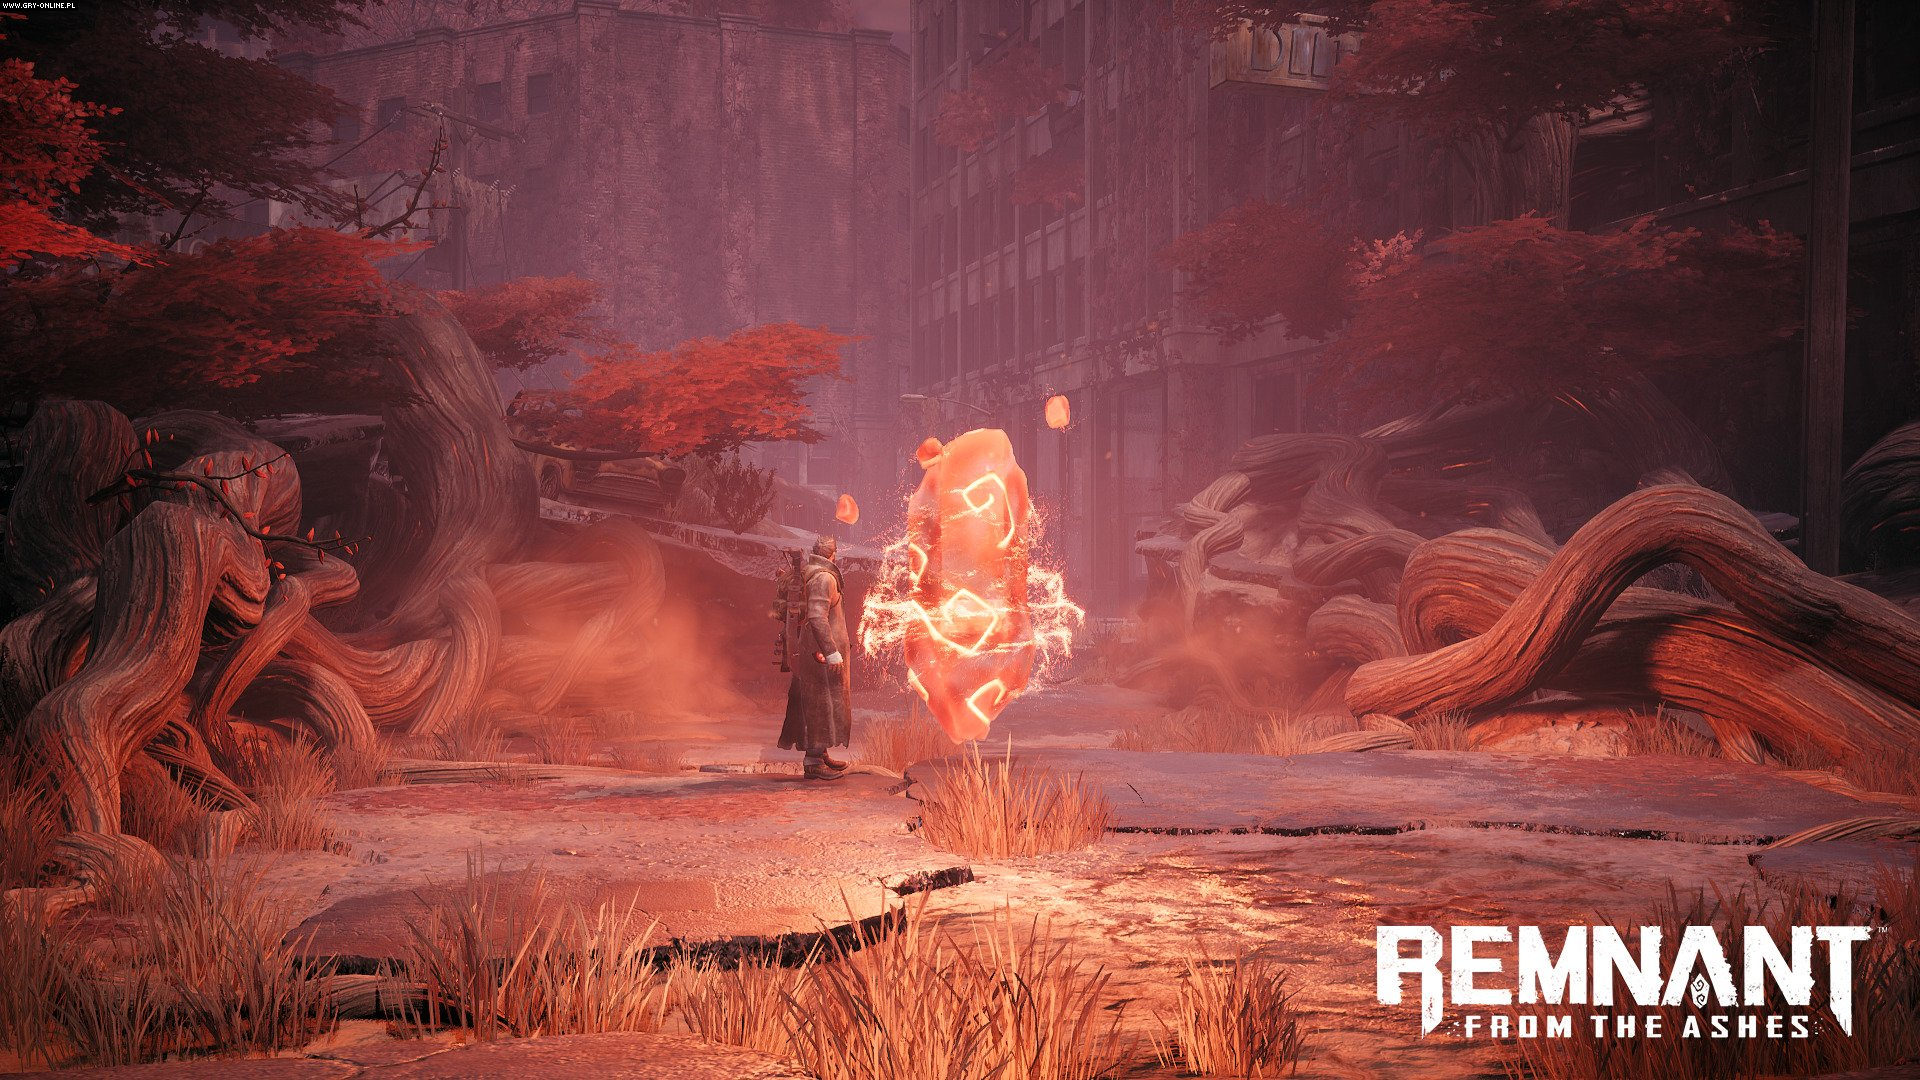 Remnant: From the Ashes PC, PS4, XONE Gry Screen 6/21, Gunfire Games, Perfect World Entertainment